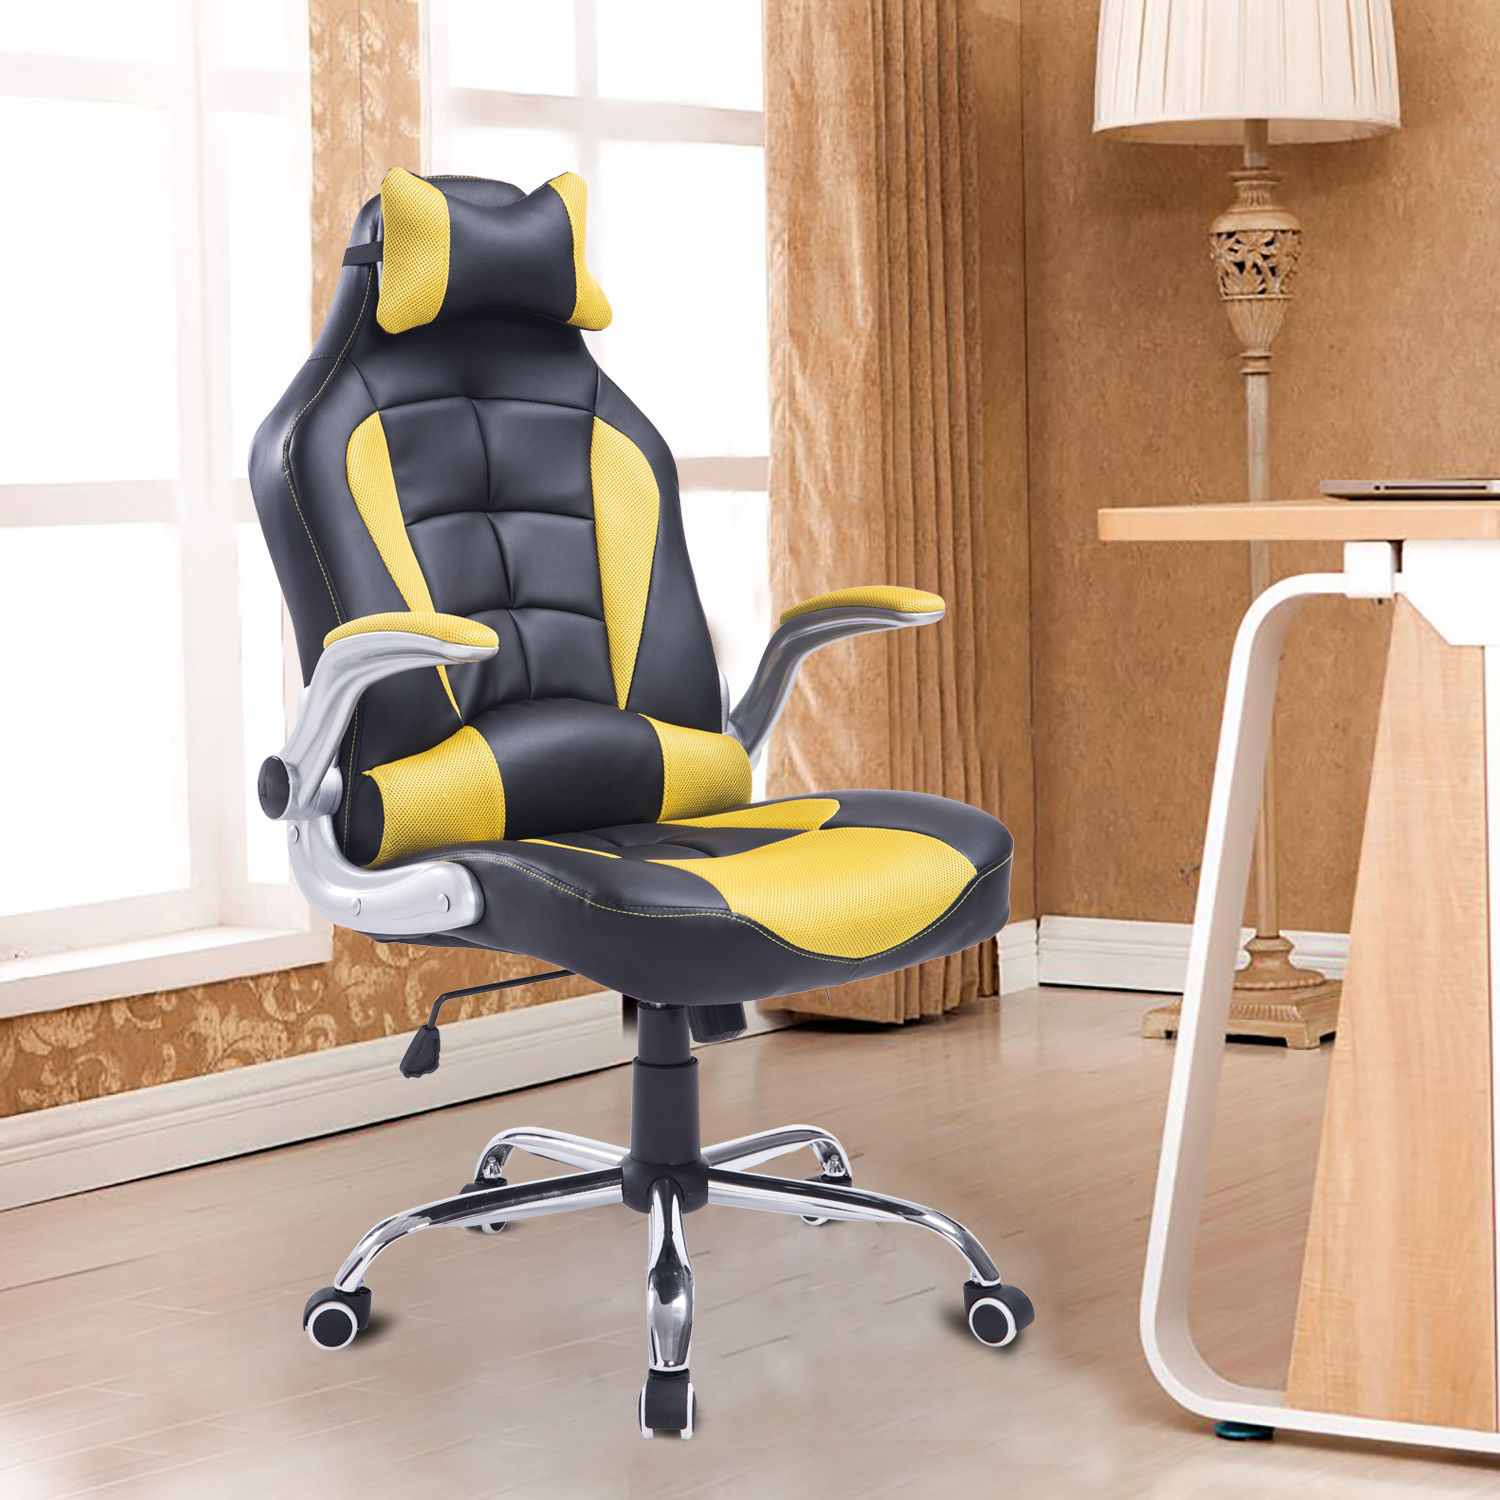 Racing Seat Office Chair Pu Office Chair Adjustable Recliner High Back Swivel